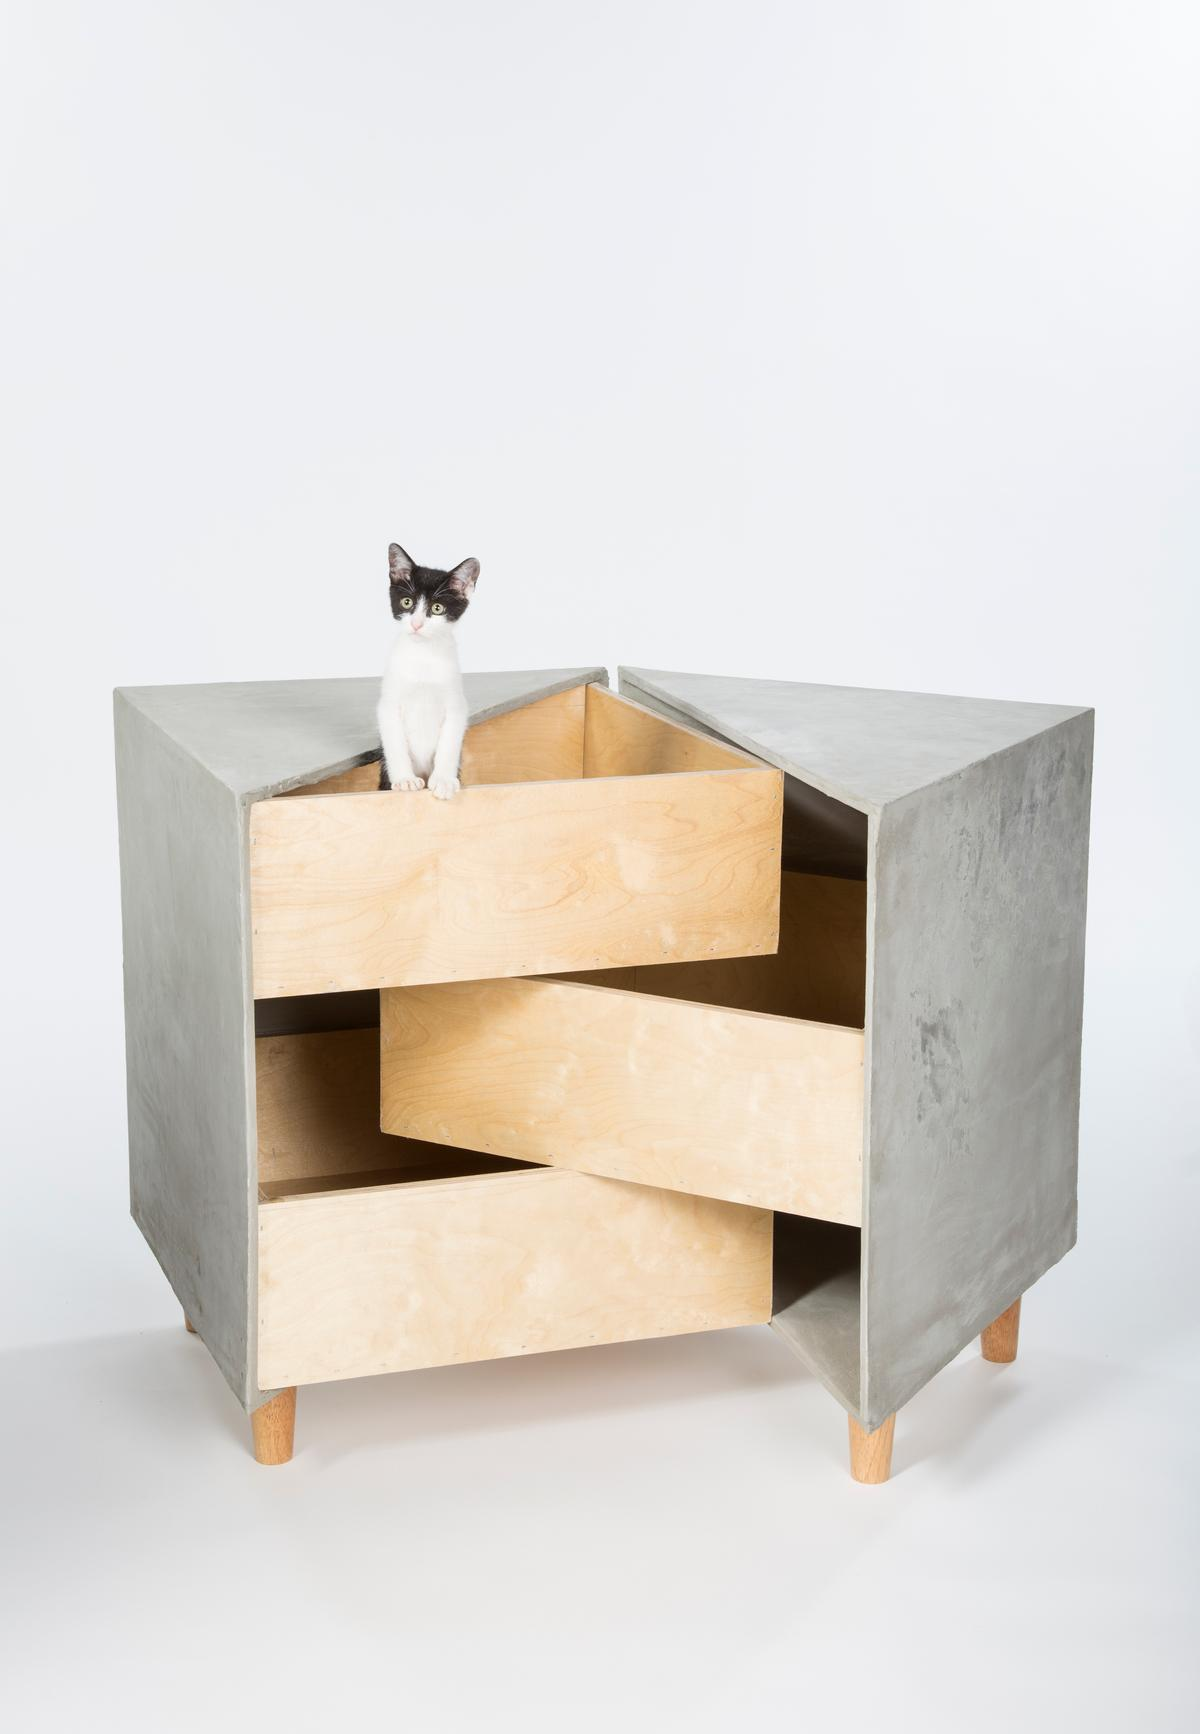 Sneaky Drawers, by rdc, is a shelter based on three intersecting drawers that provides a sanctuary for multiple cats